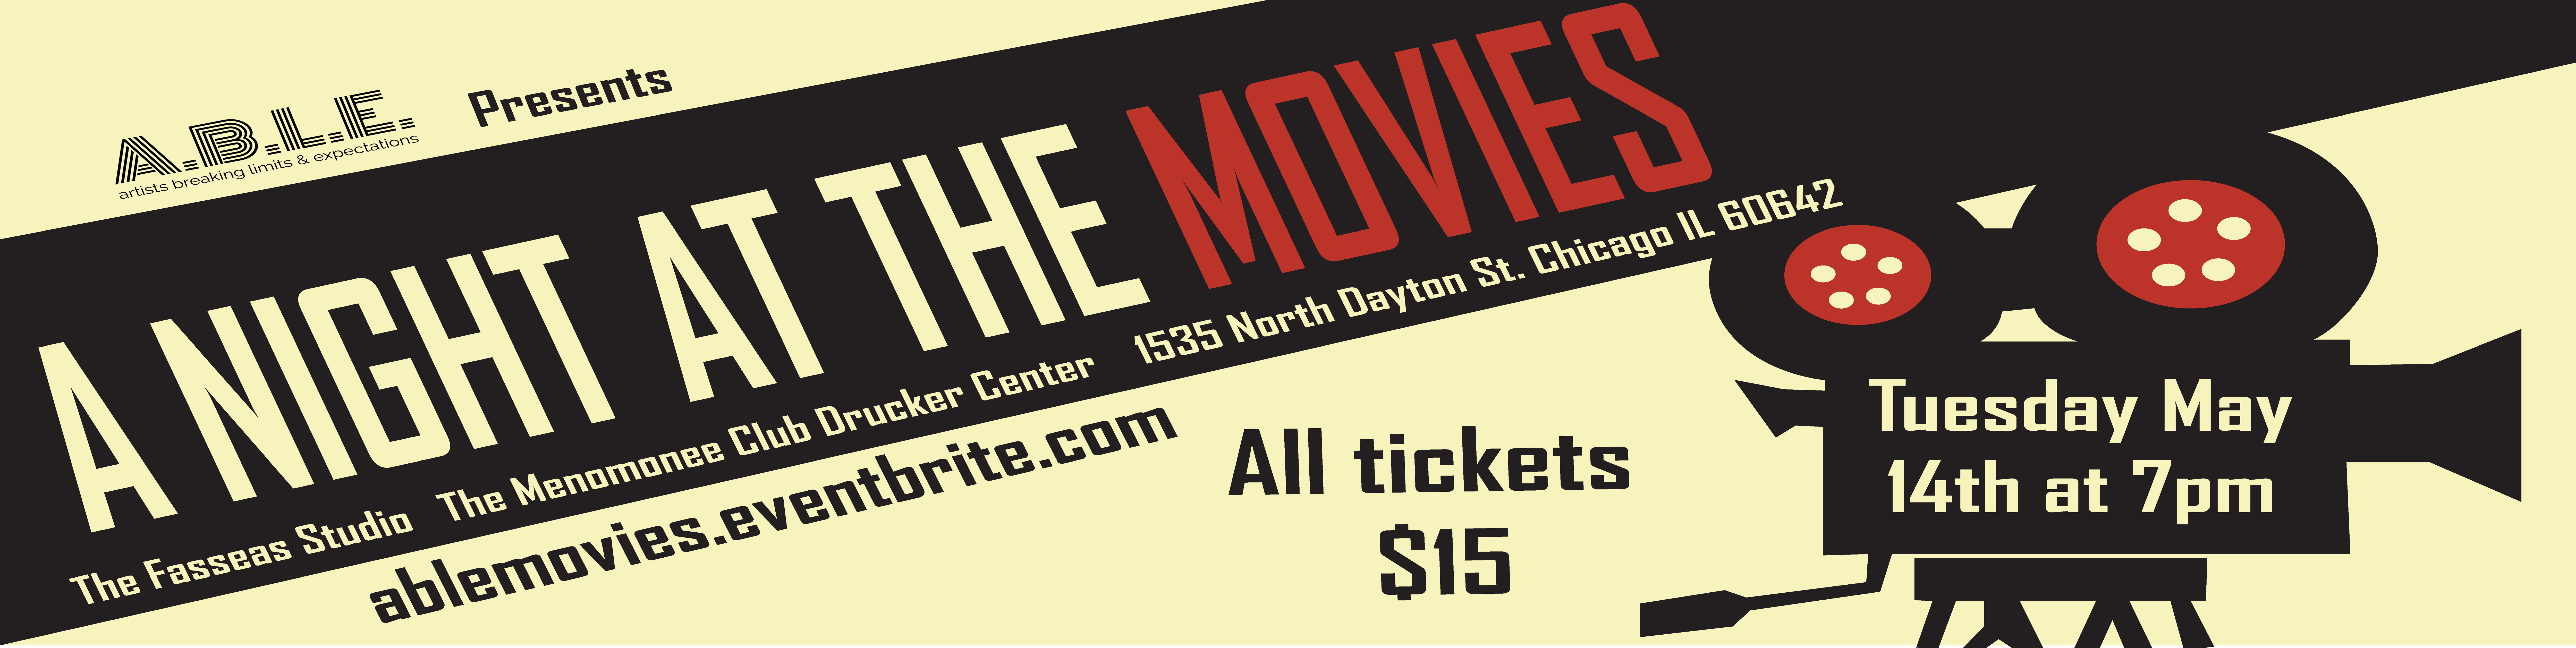 A.B.L.E. presents A Night At The Movies event banner designed by Maddy Ward